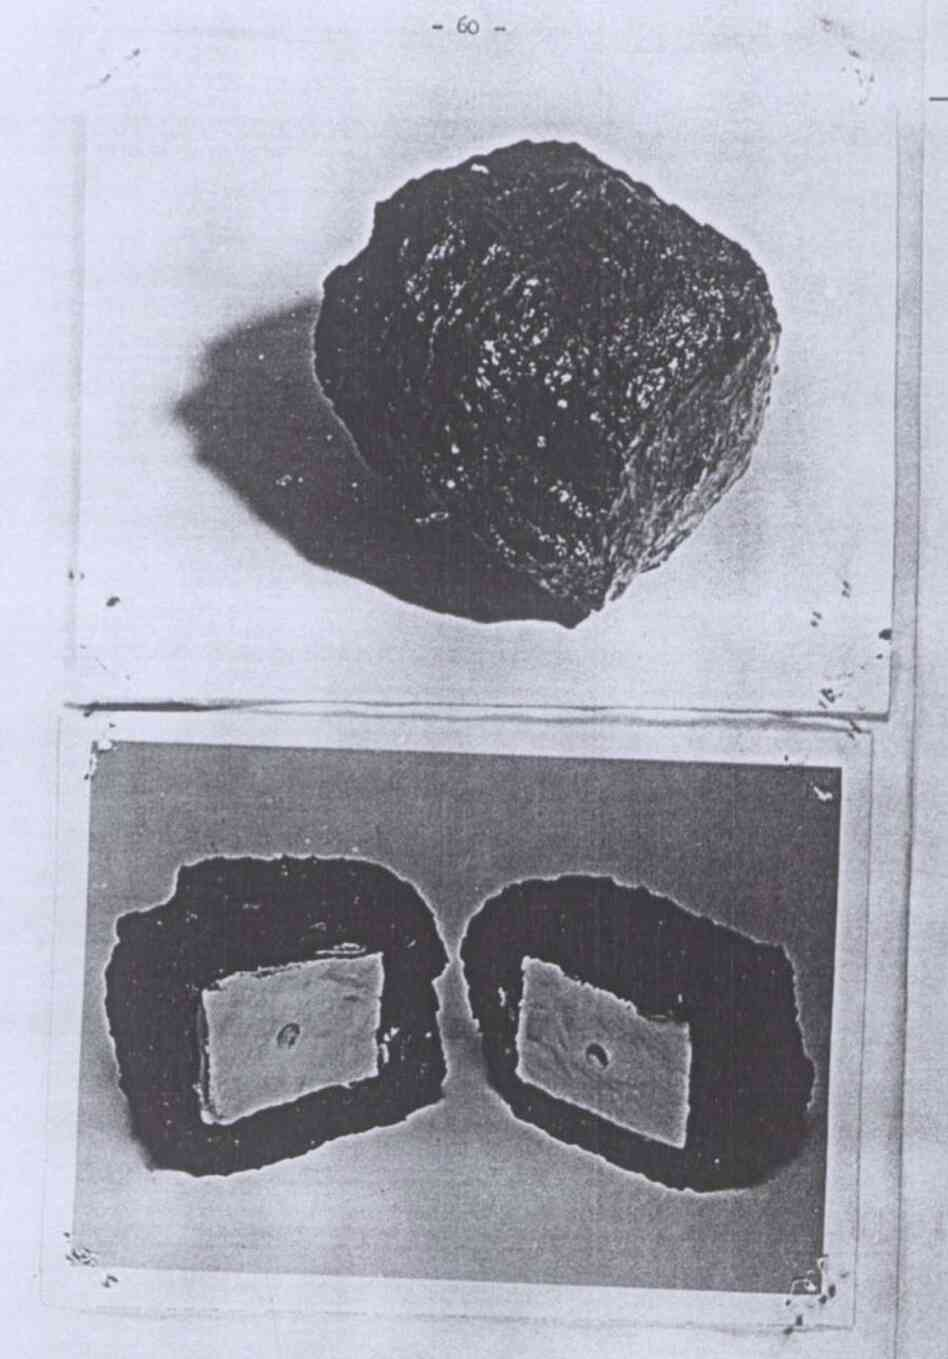 A bomb camouflaged as a lump of coal.